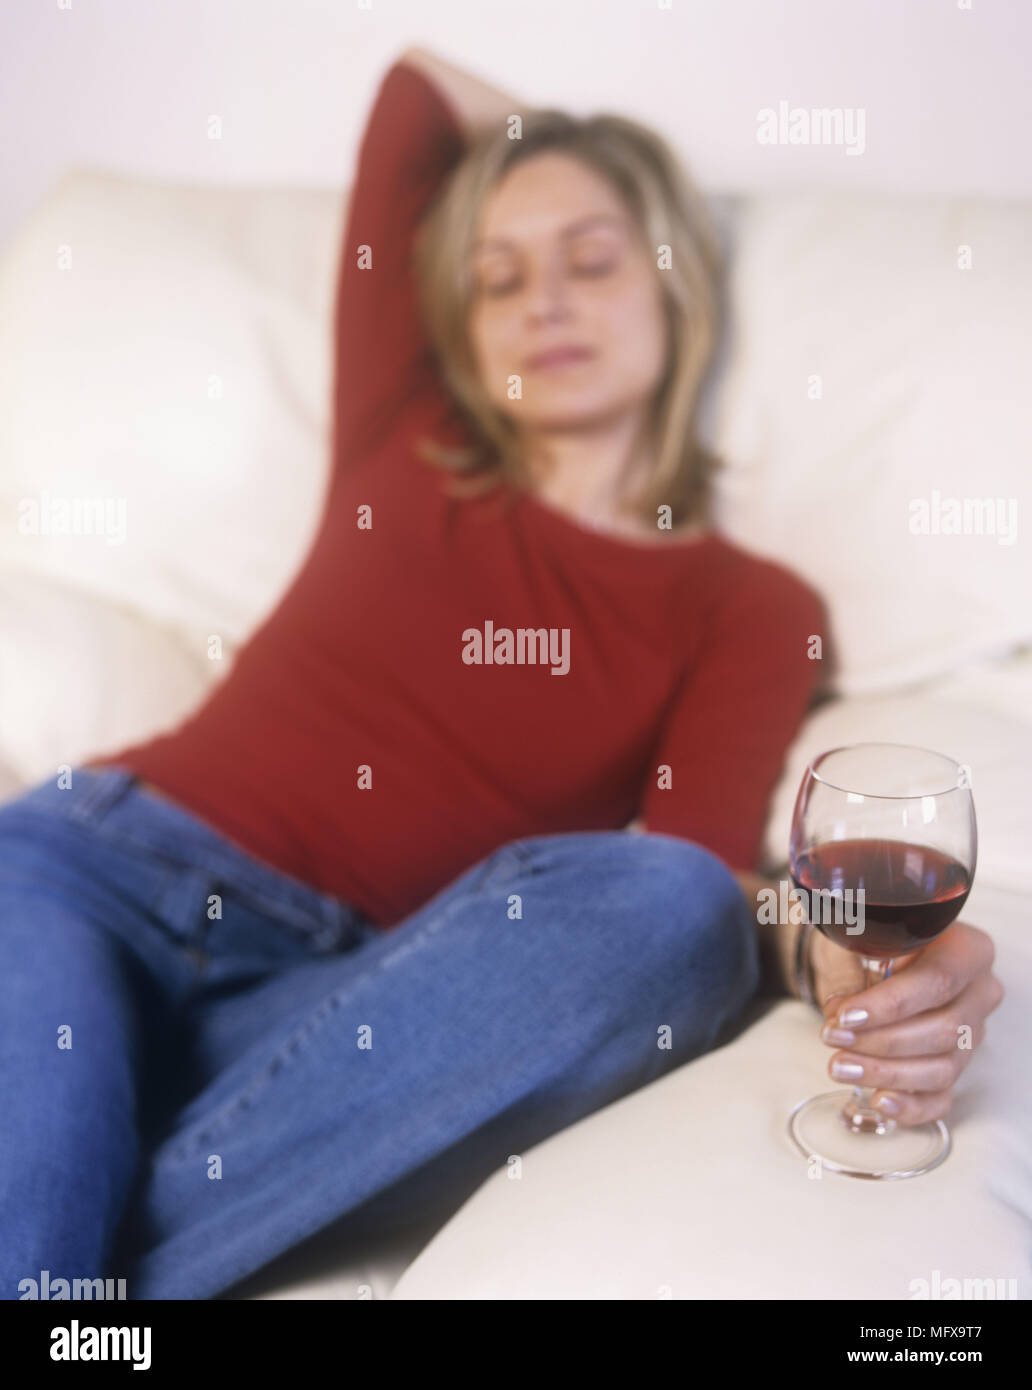 Astounding Woman In Red Top And Blue Jeans Sitting On White Sofa With Inzonedesignstudio Interior Chair Design Inzonedesignstudiocom